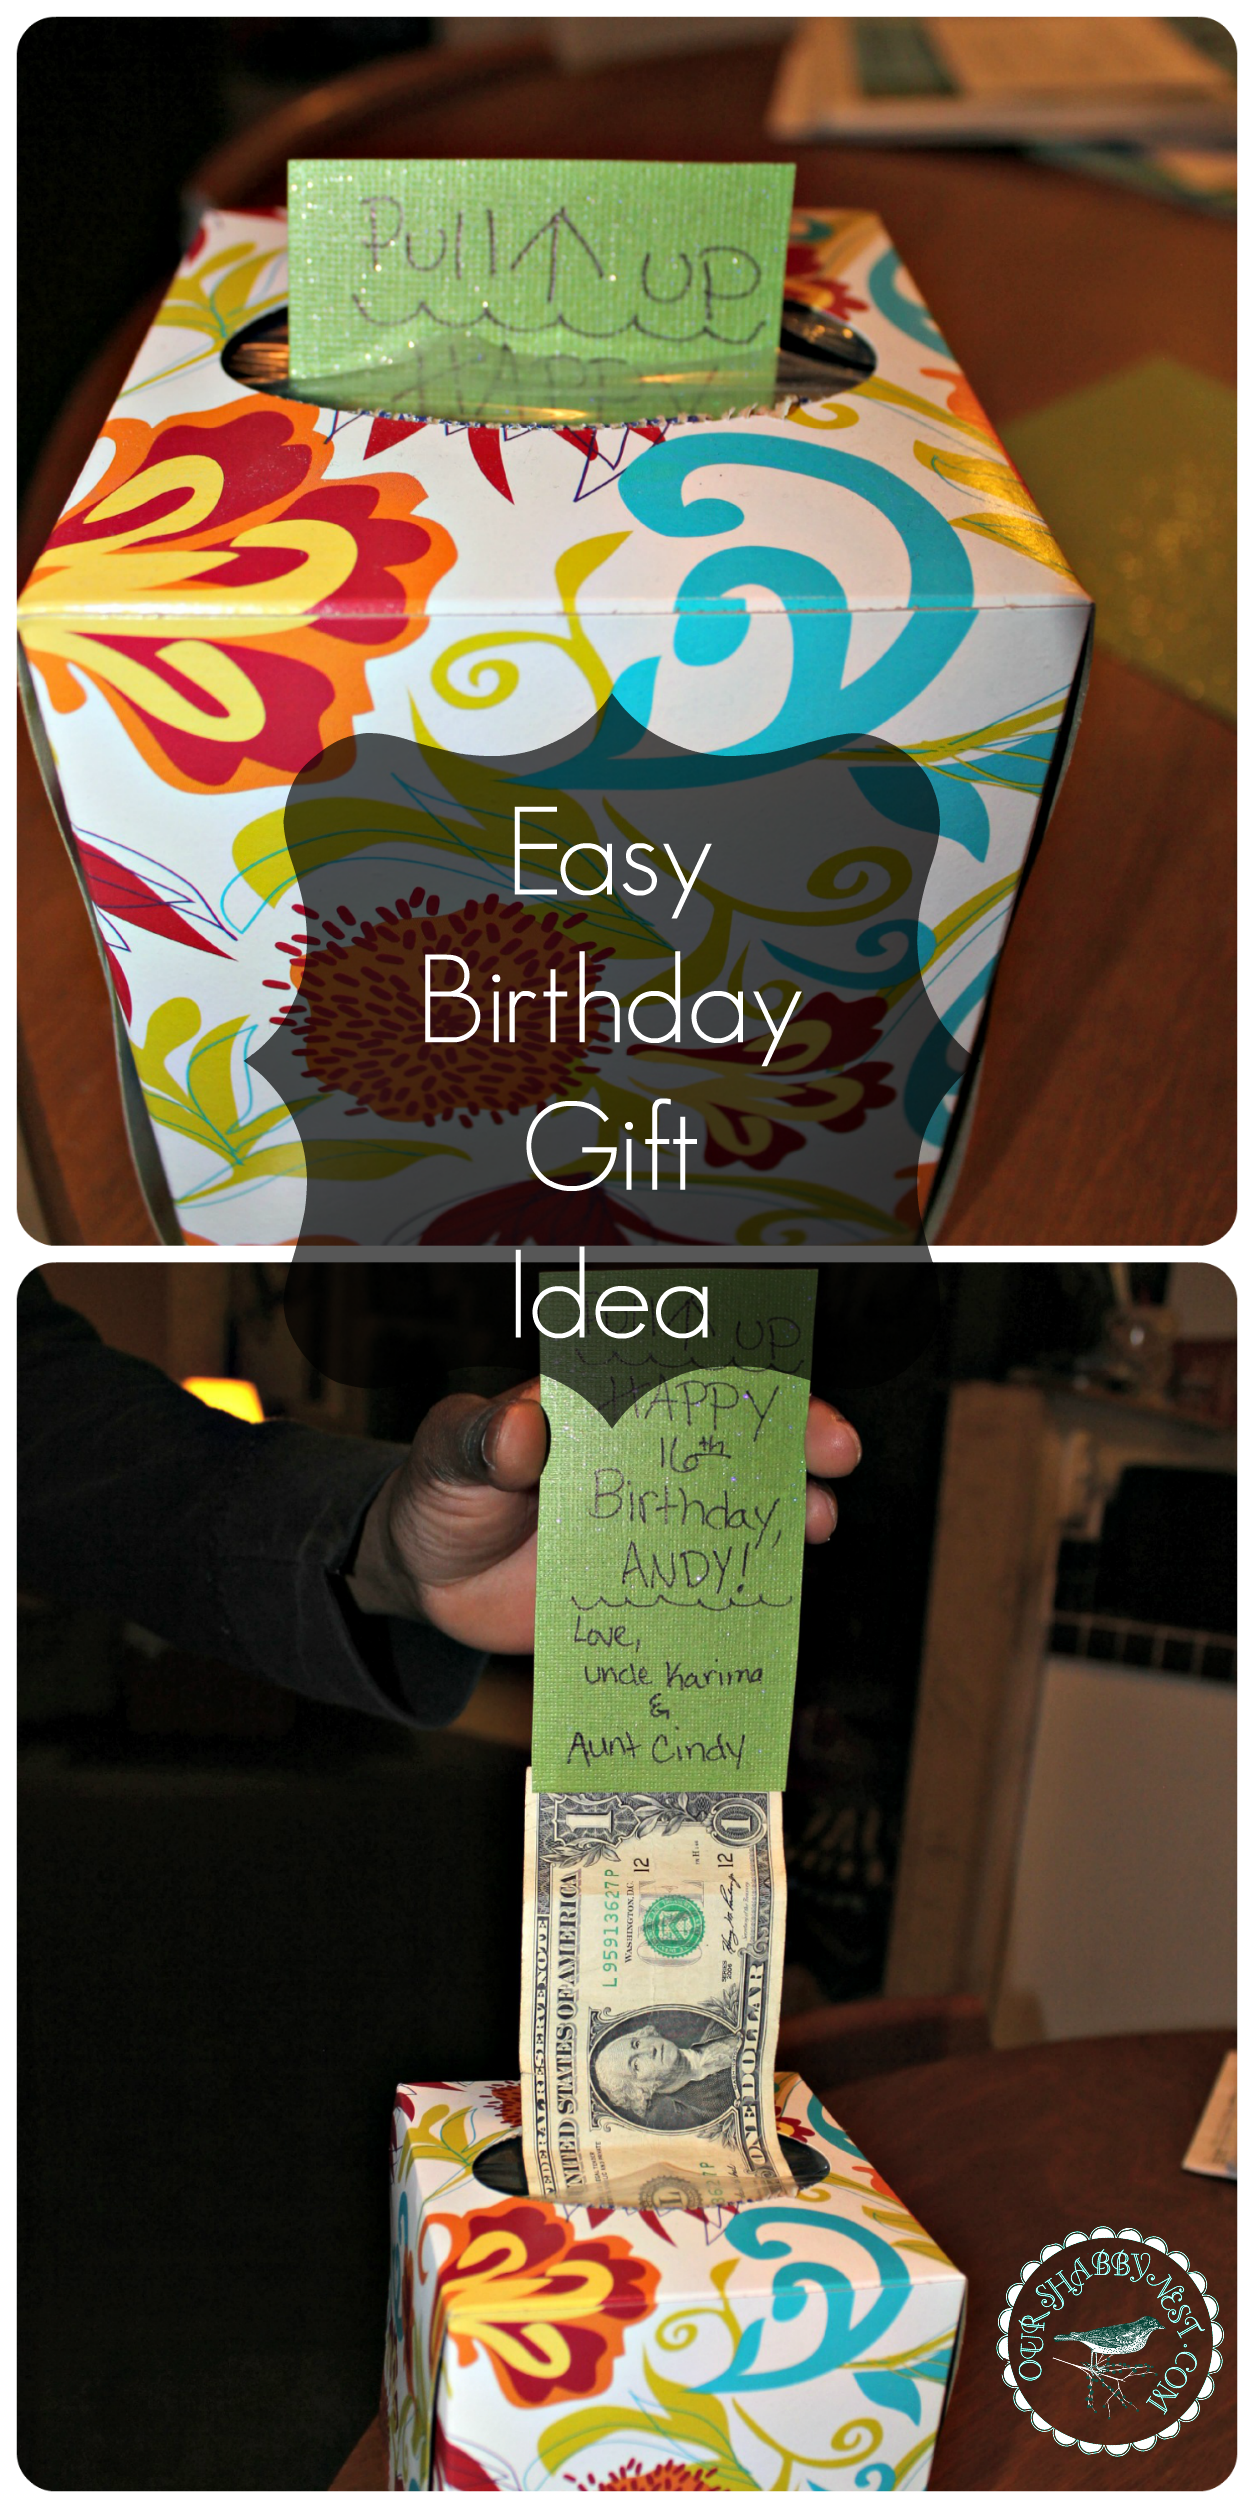 Birthday t idea Money Homemade Gifts Pinterest